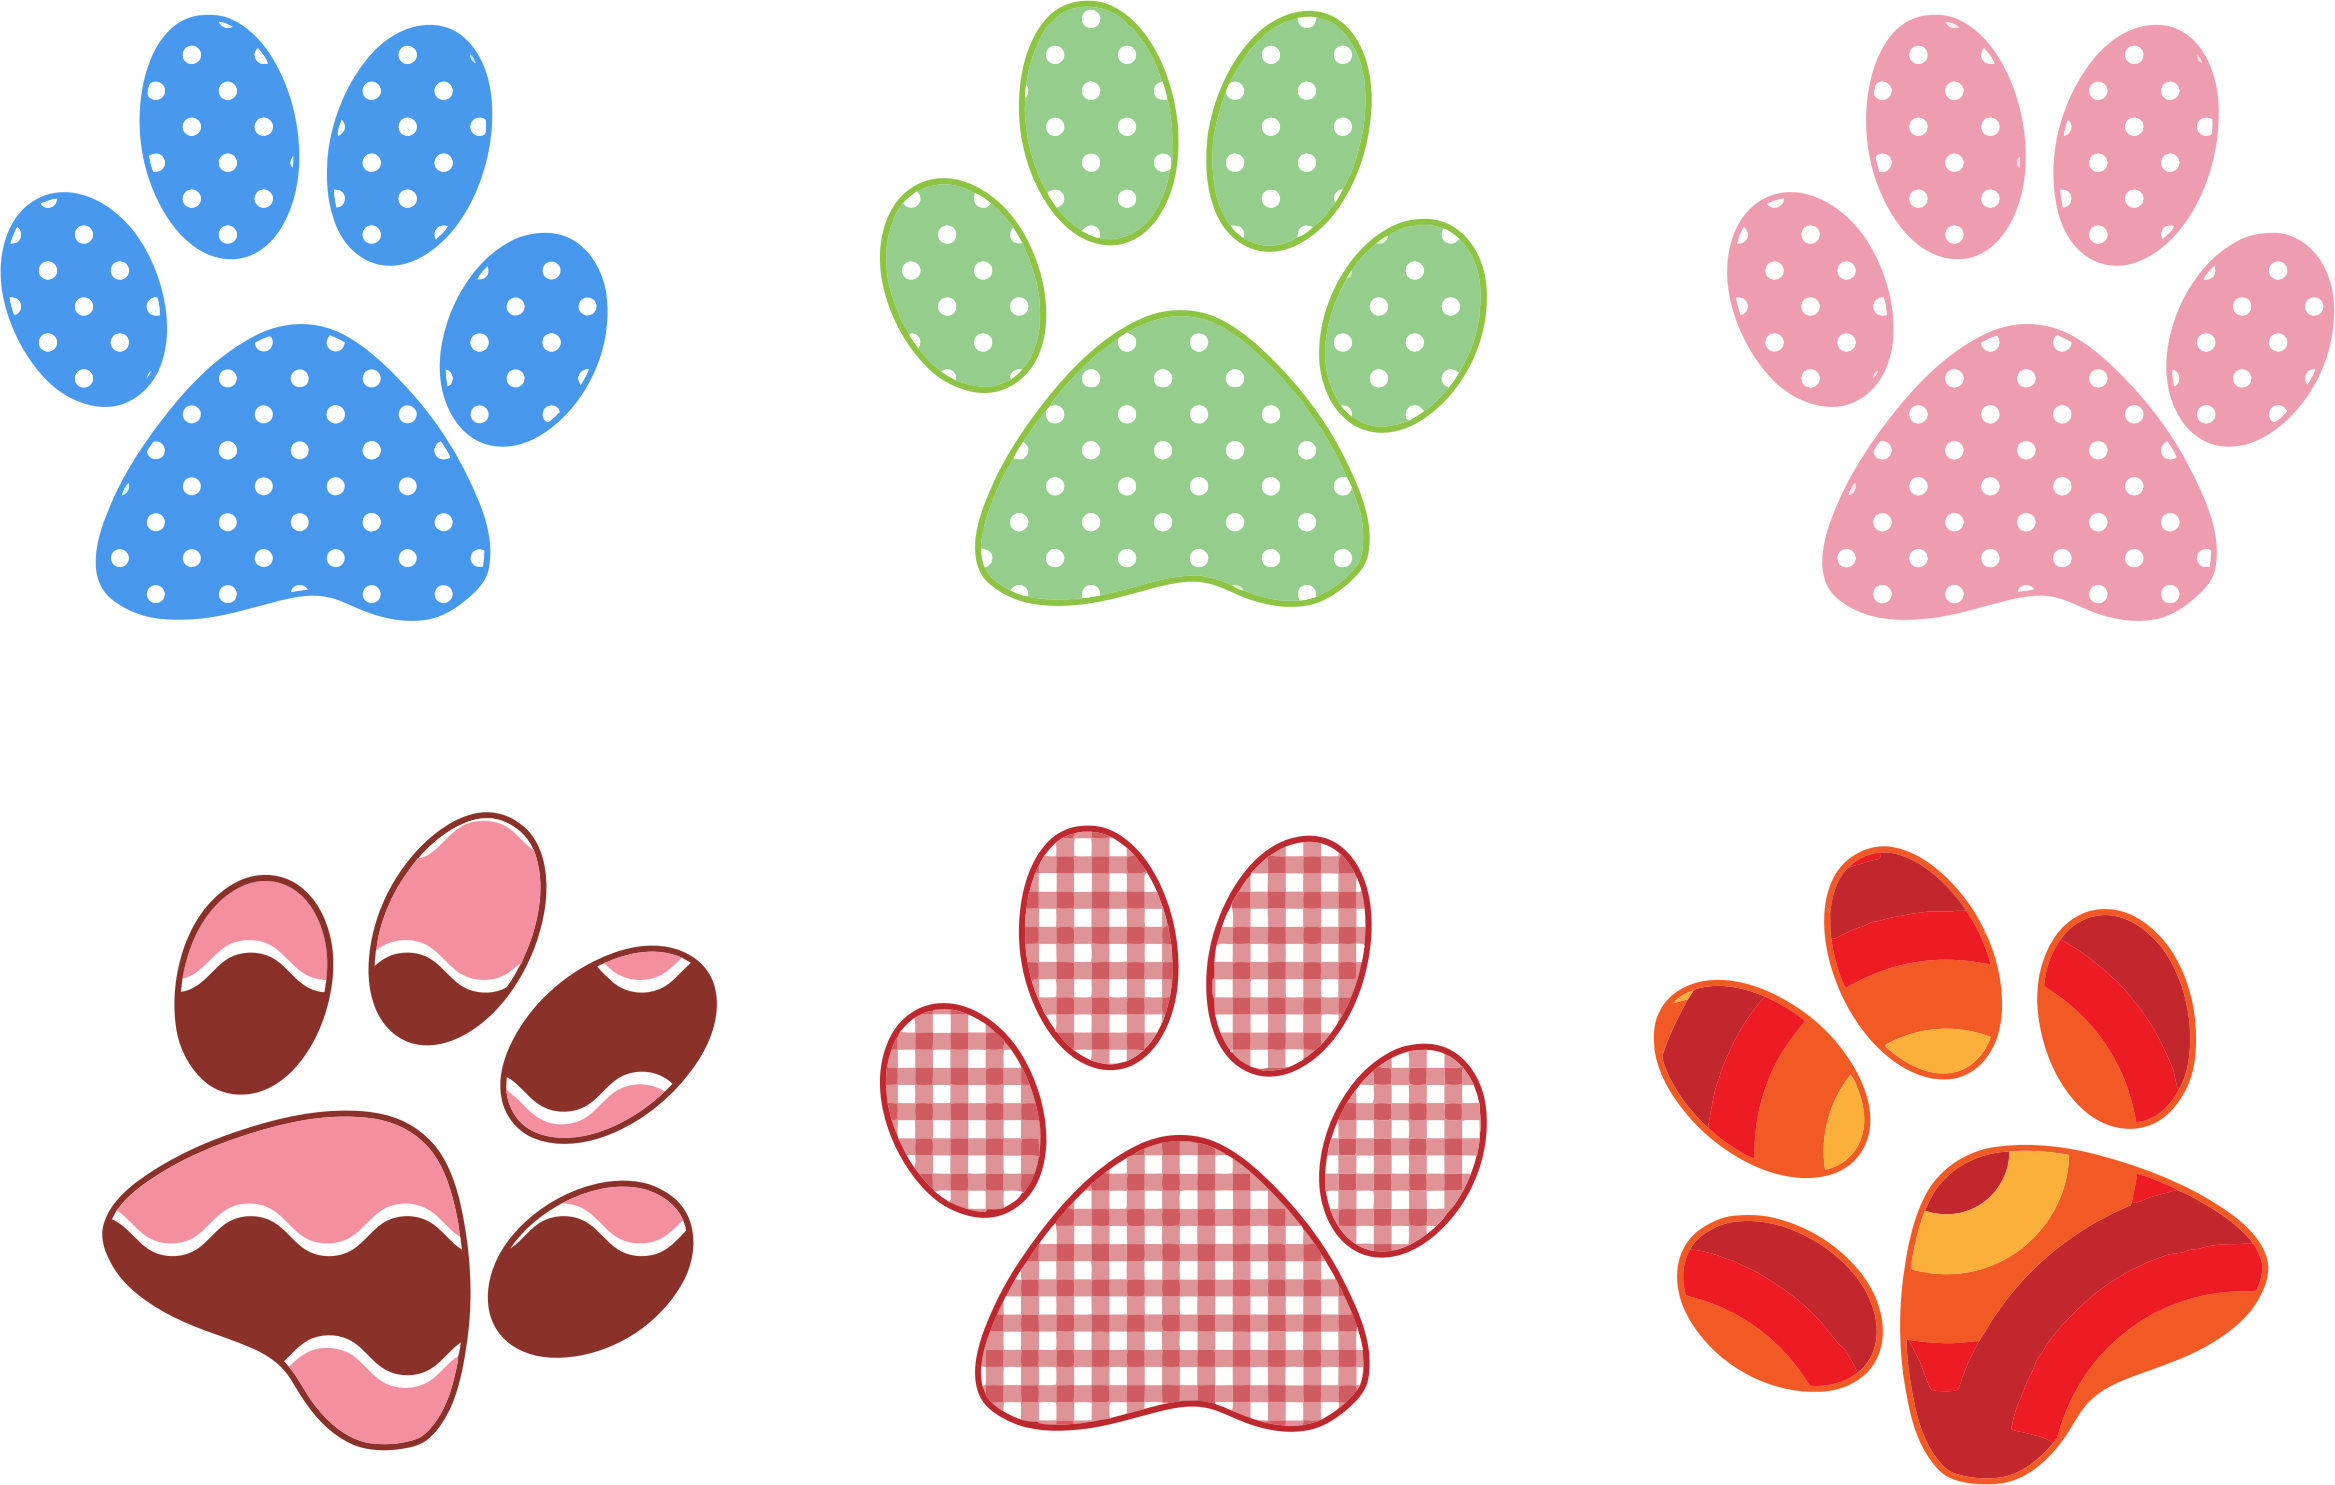 Colorful Paw Prints by GDJ